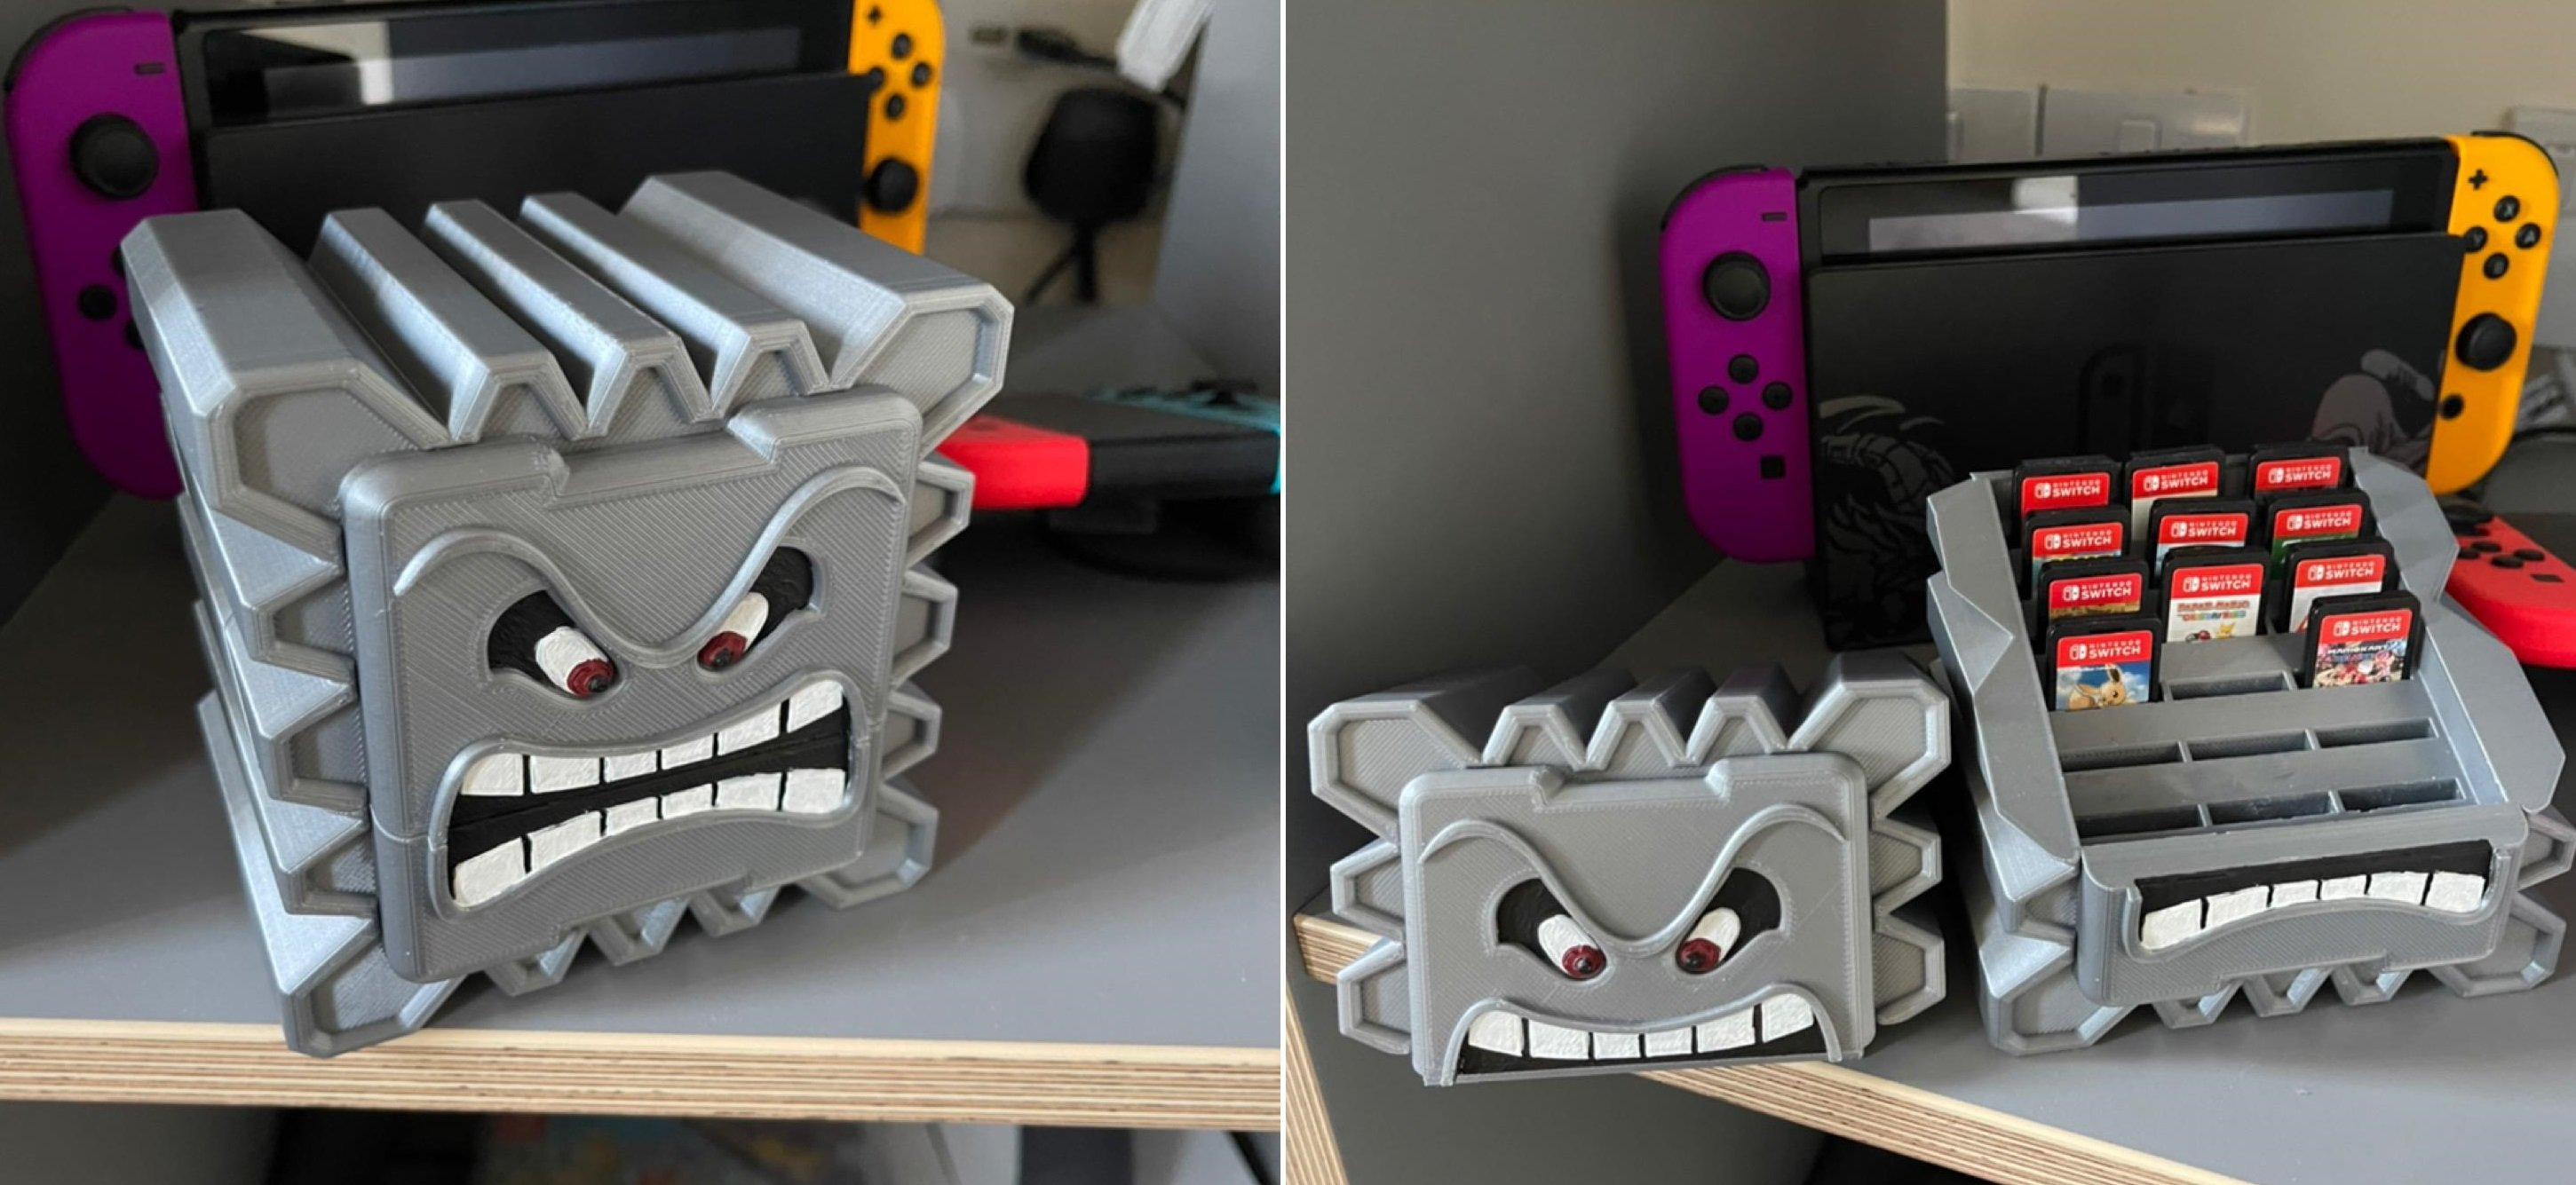 This 3D-printed Switch cartridge holder is the stuff of dreams screenshot